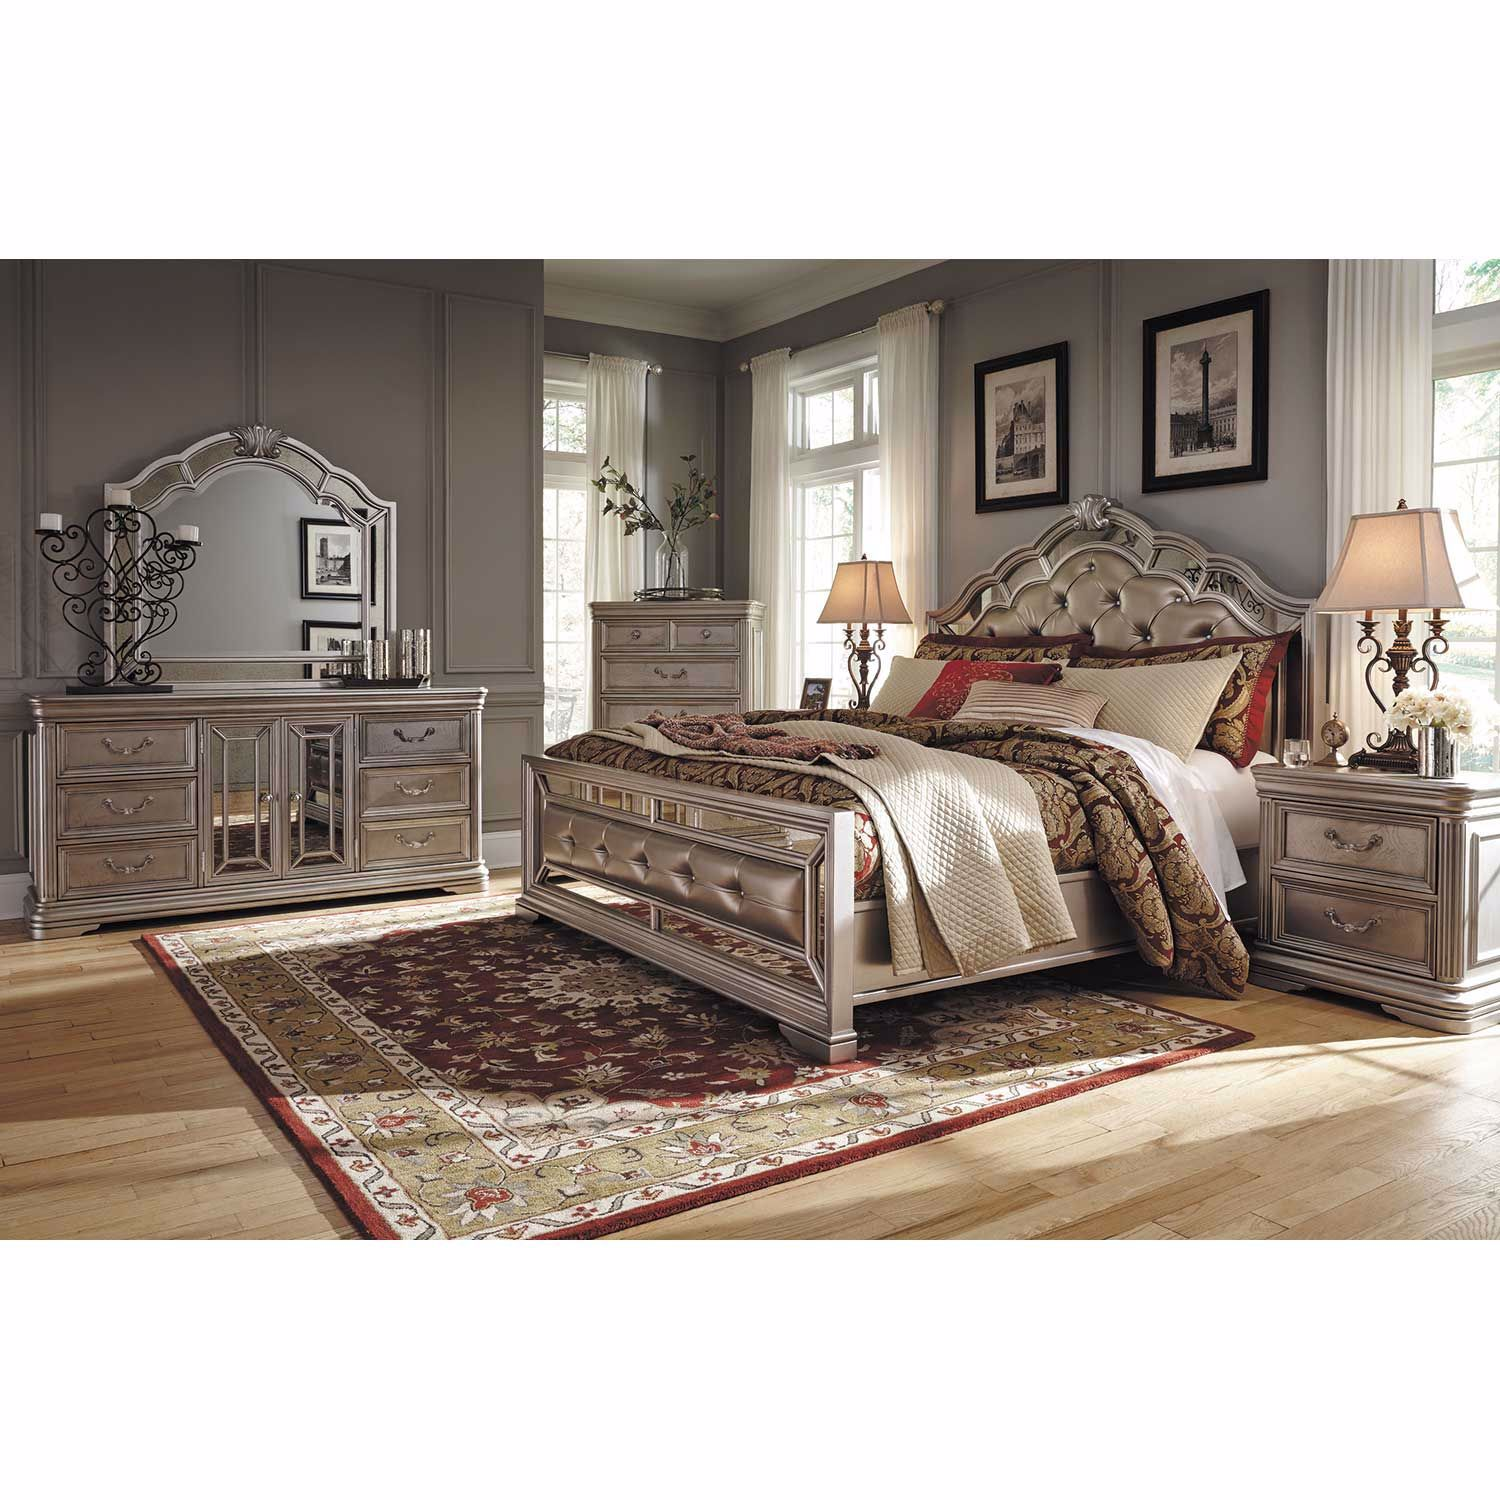 Picture of Birlanny 5 Piece Bedroom Set